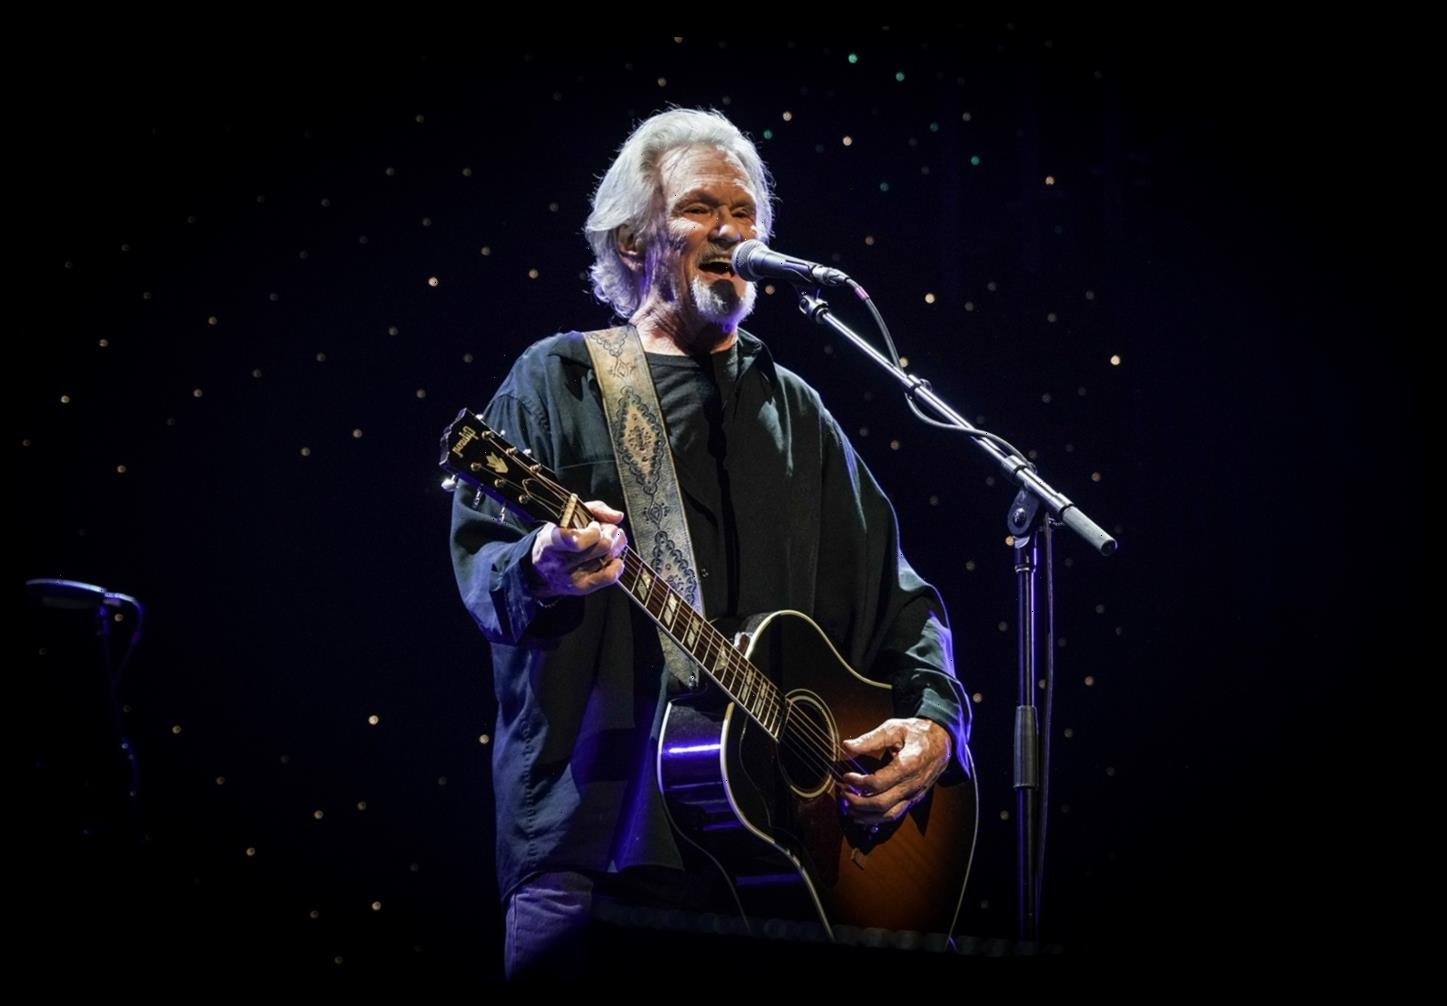 Kris Kristofferson Says He's Retired. Watch His Final Concert